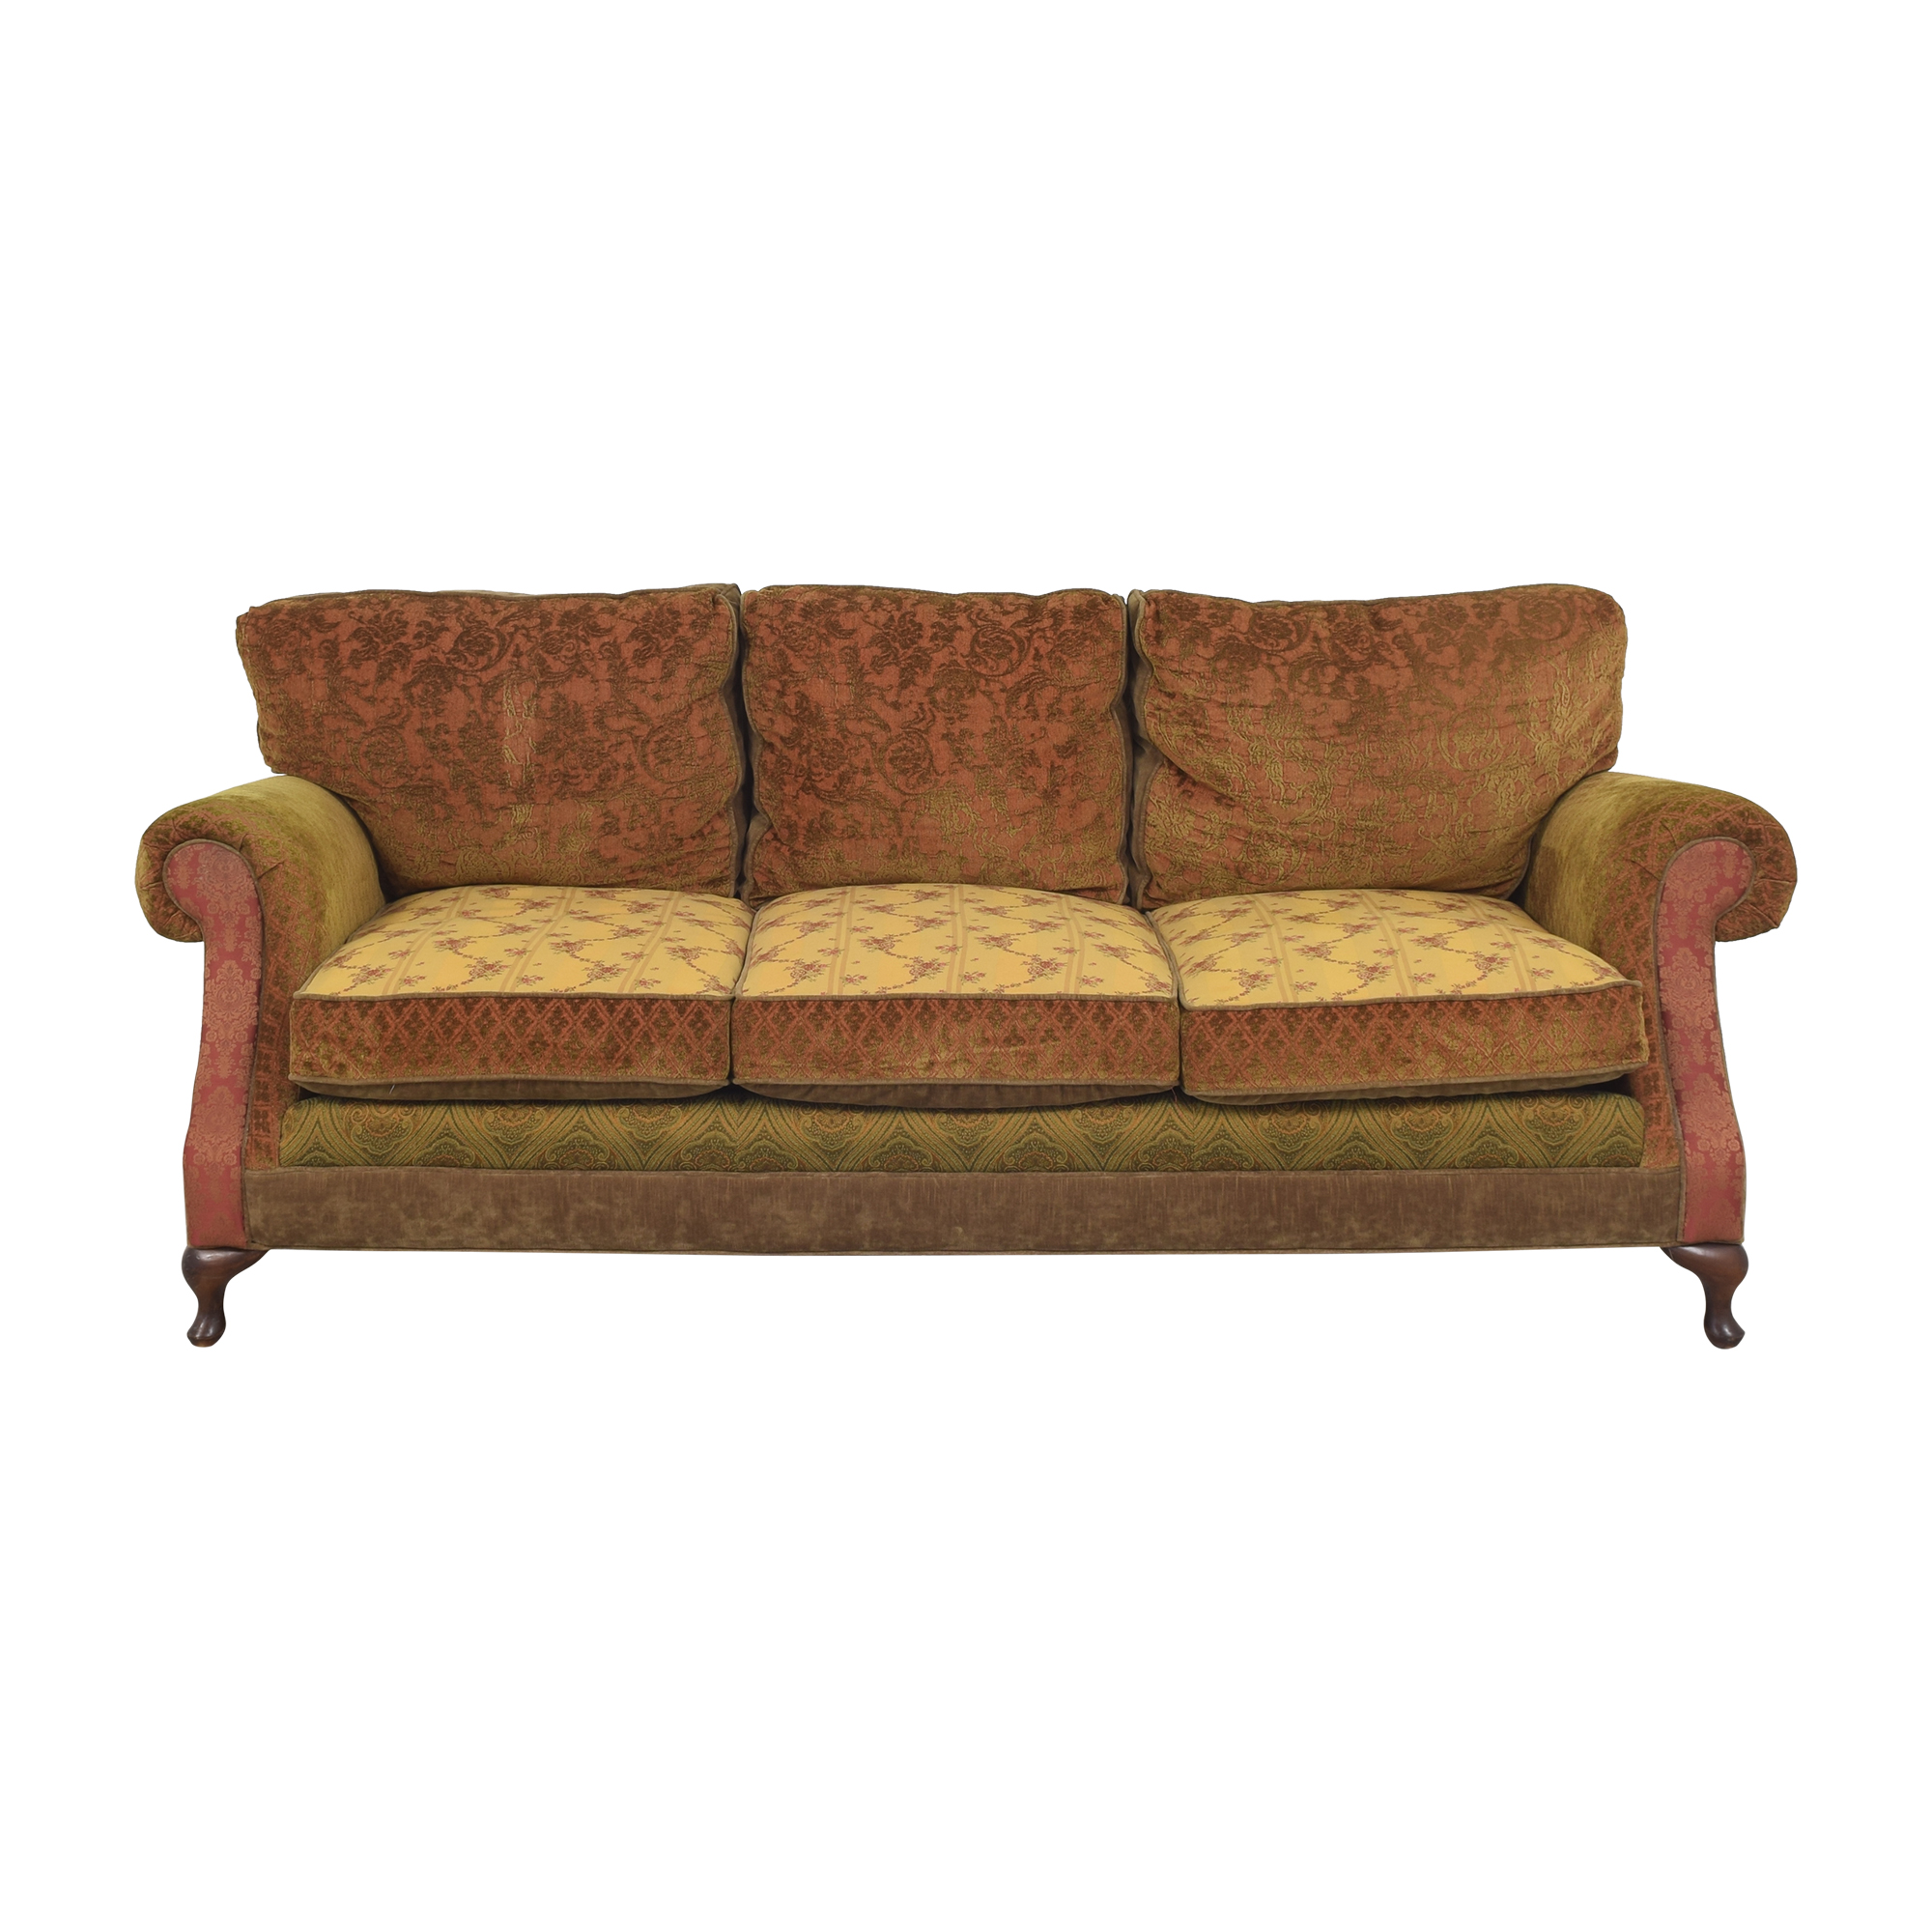 Laura Ashley Laura Ashley Patterned Roll Arm Sofa on sale